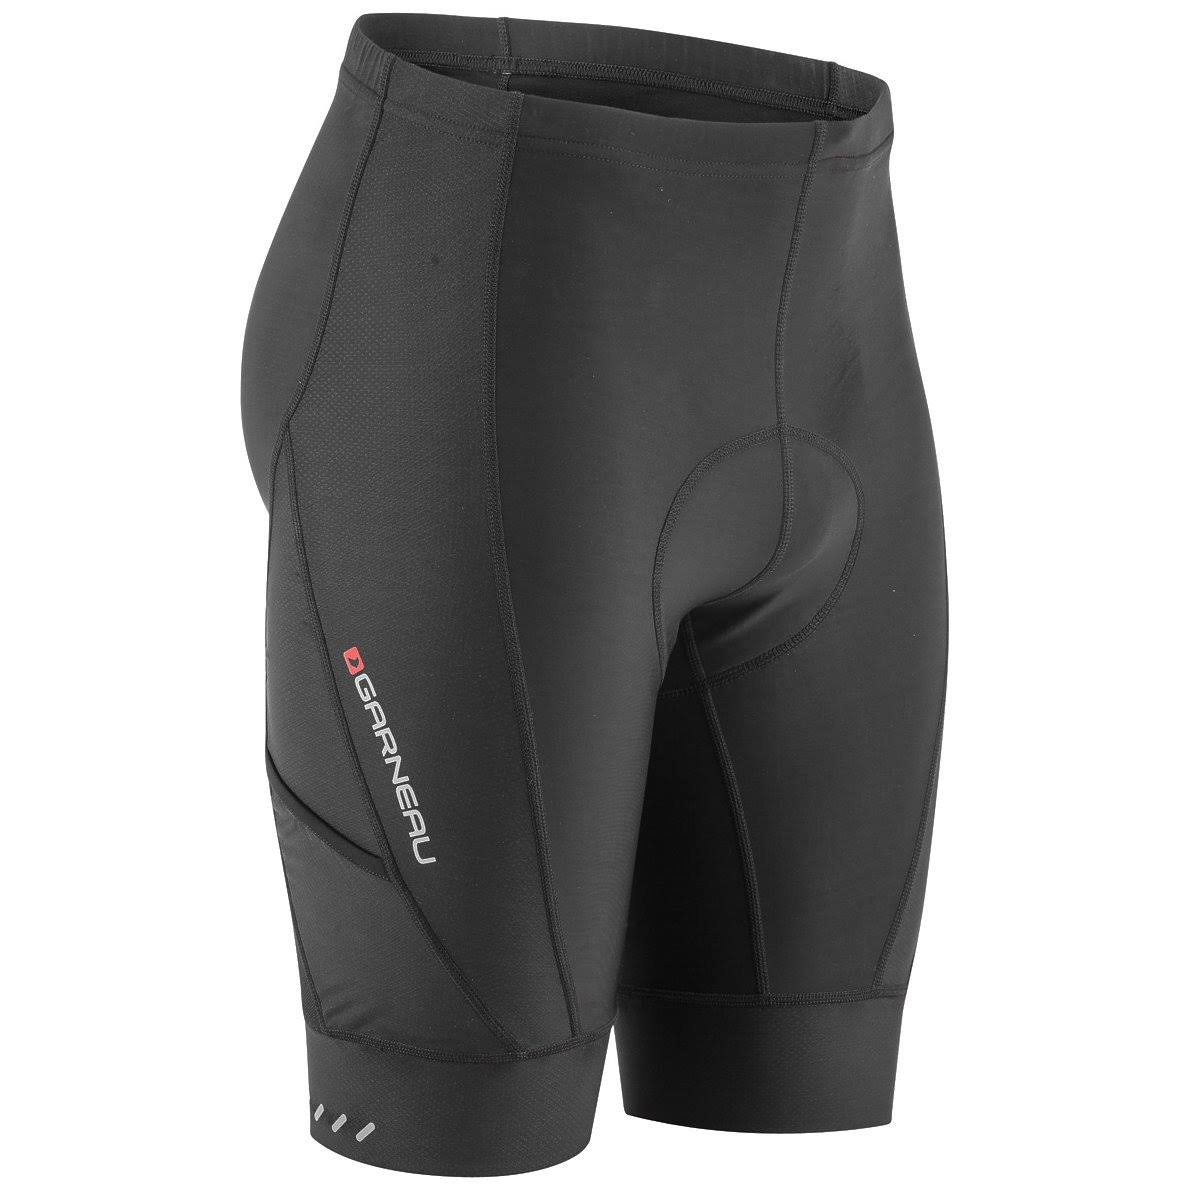 Louis Garneau Men's Optimum Shorts Black XXL